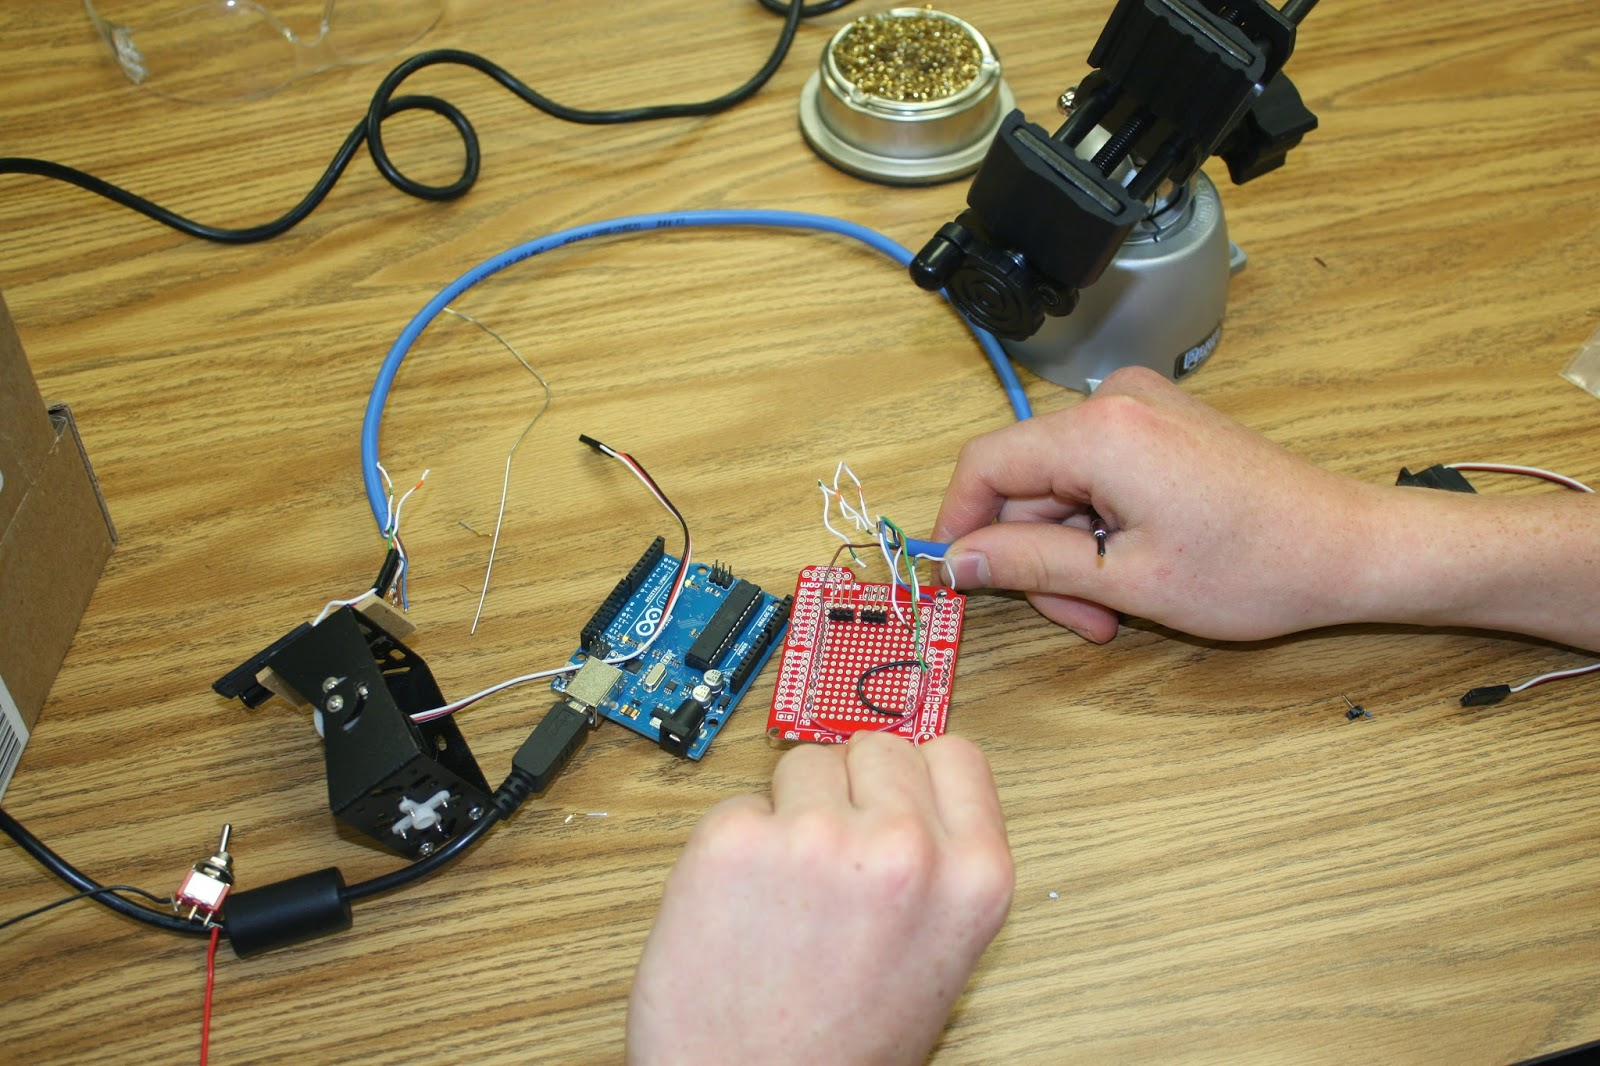 Logan Digital Electronics Unmanned Aerial Vehicle Uav Project Wire Harness Shield Solding Up A Prototype With Our Inputs To The Camera We Are Using Cat5 Cable As Wiring Thermal Sensor Will Be Moved By Two Servo